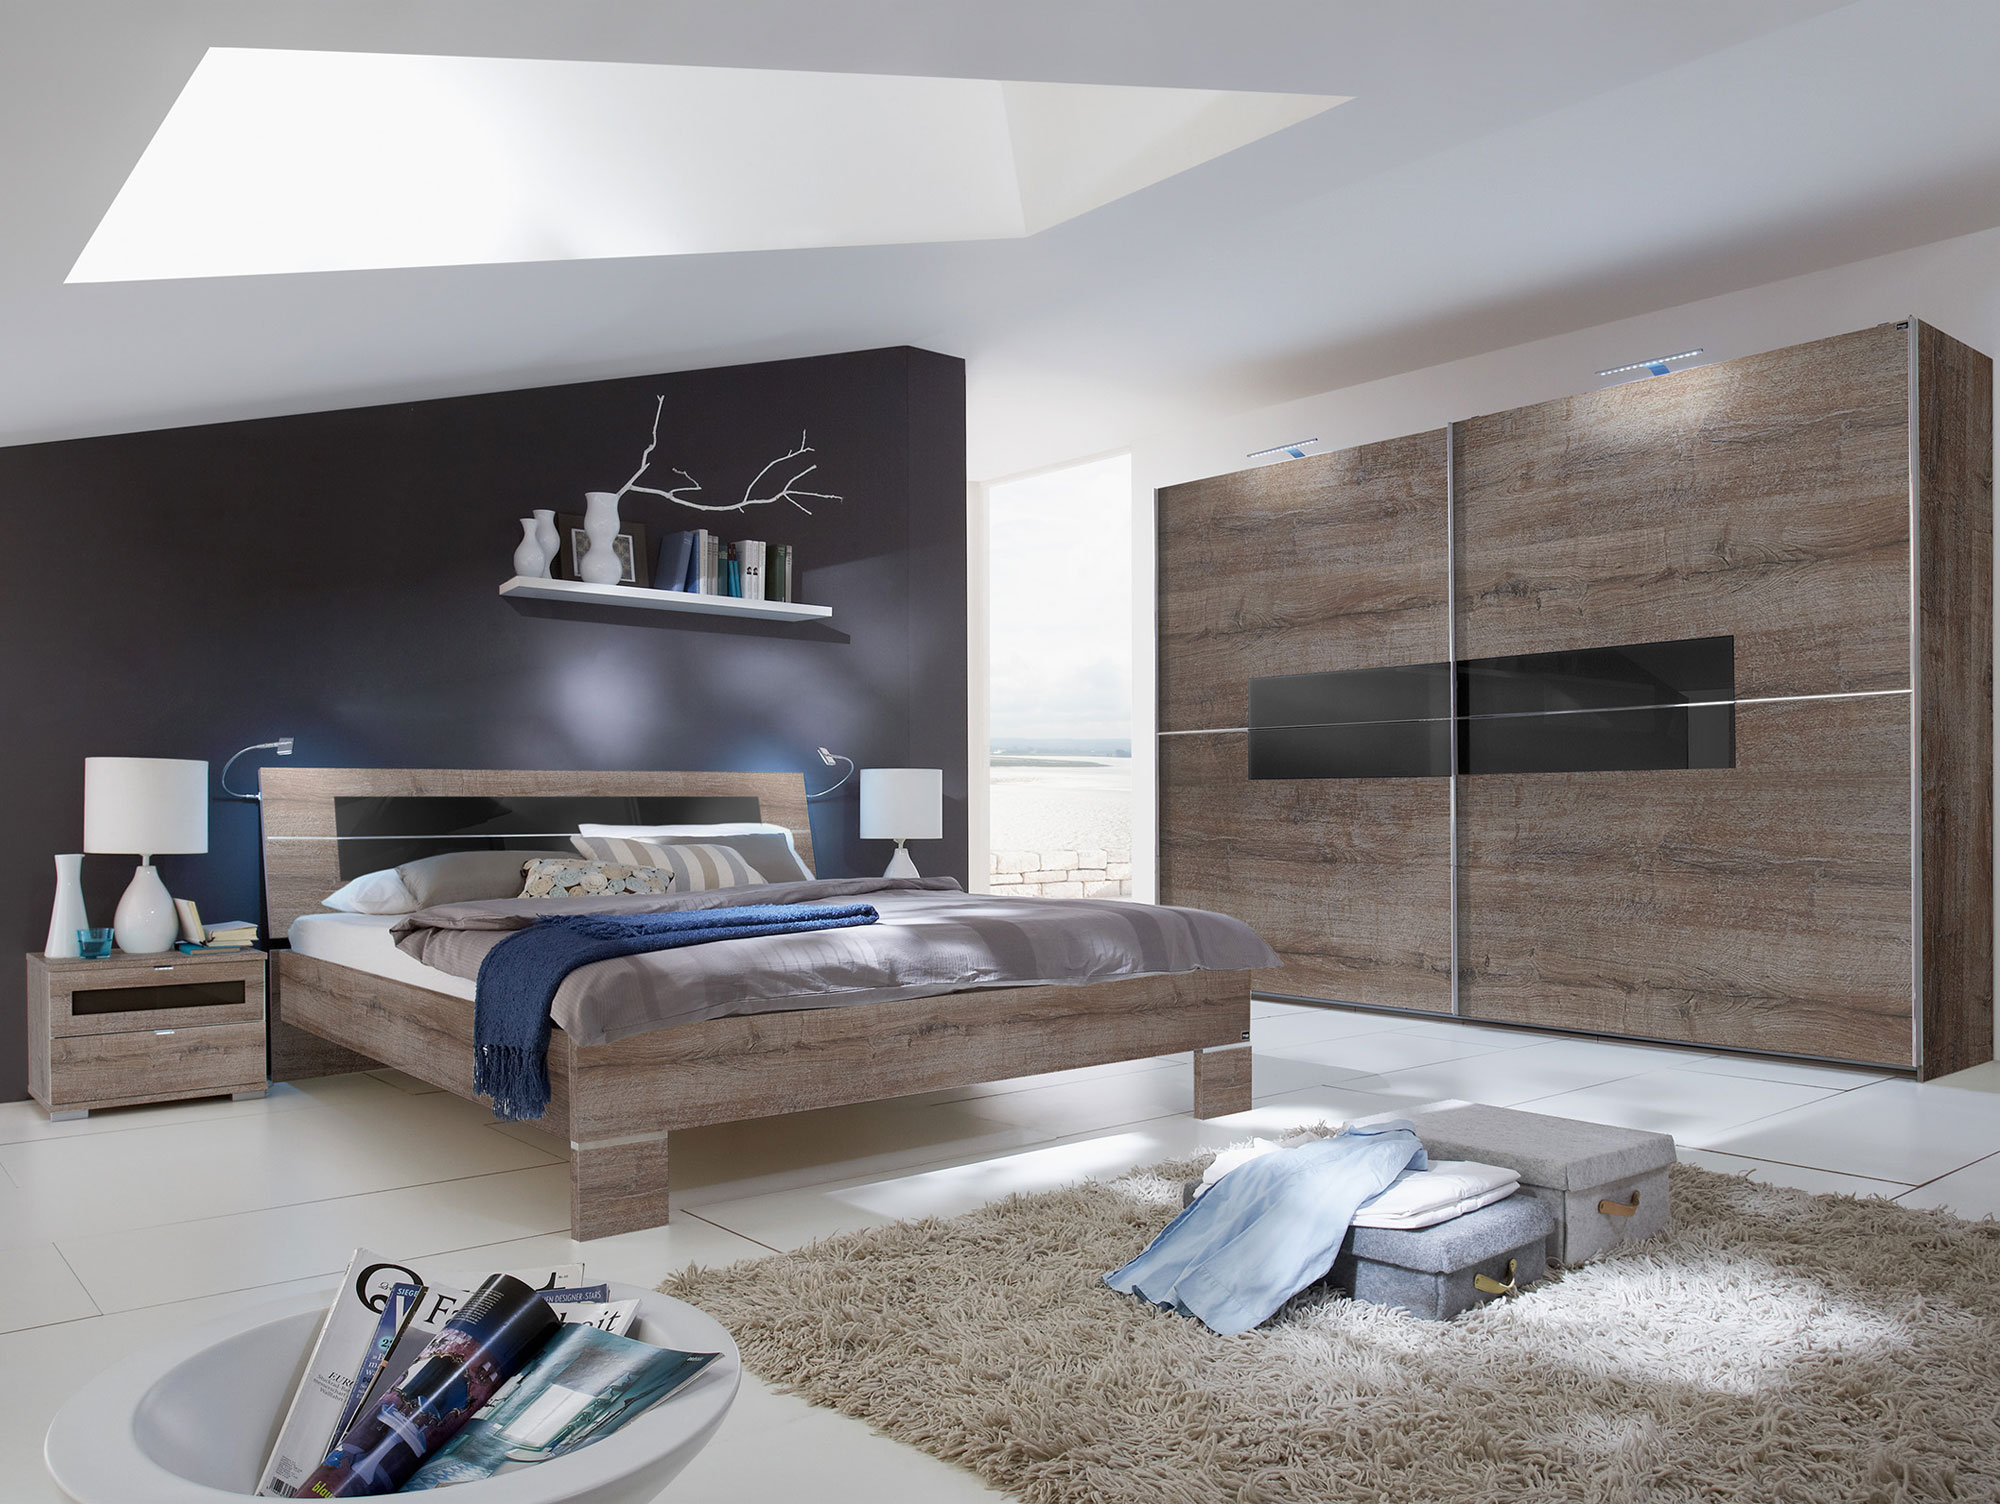 alina schlafzimmer 4 teilig 200 cm 160 x 200 cm schlammeiche glas schwarz. Black Bedroom Furniture Sets. Home Design Ideas